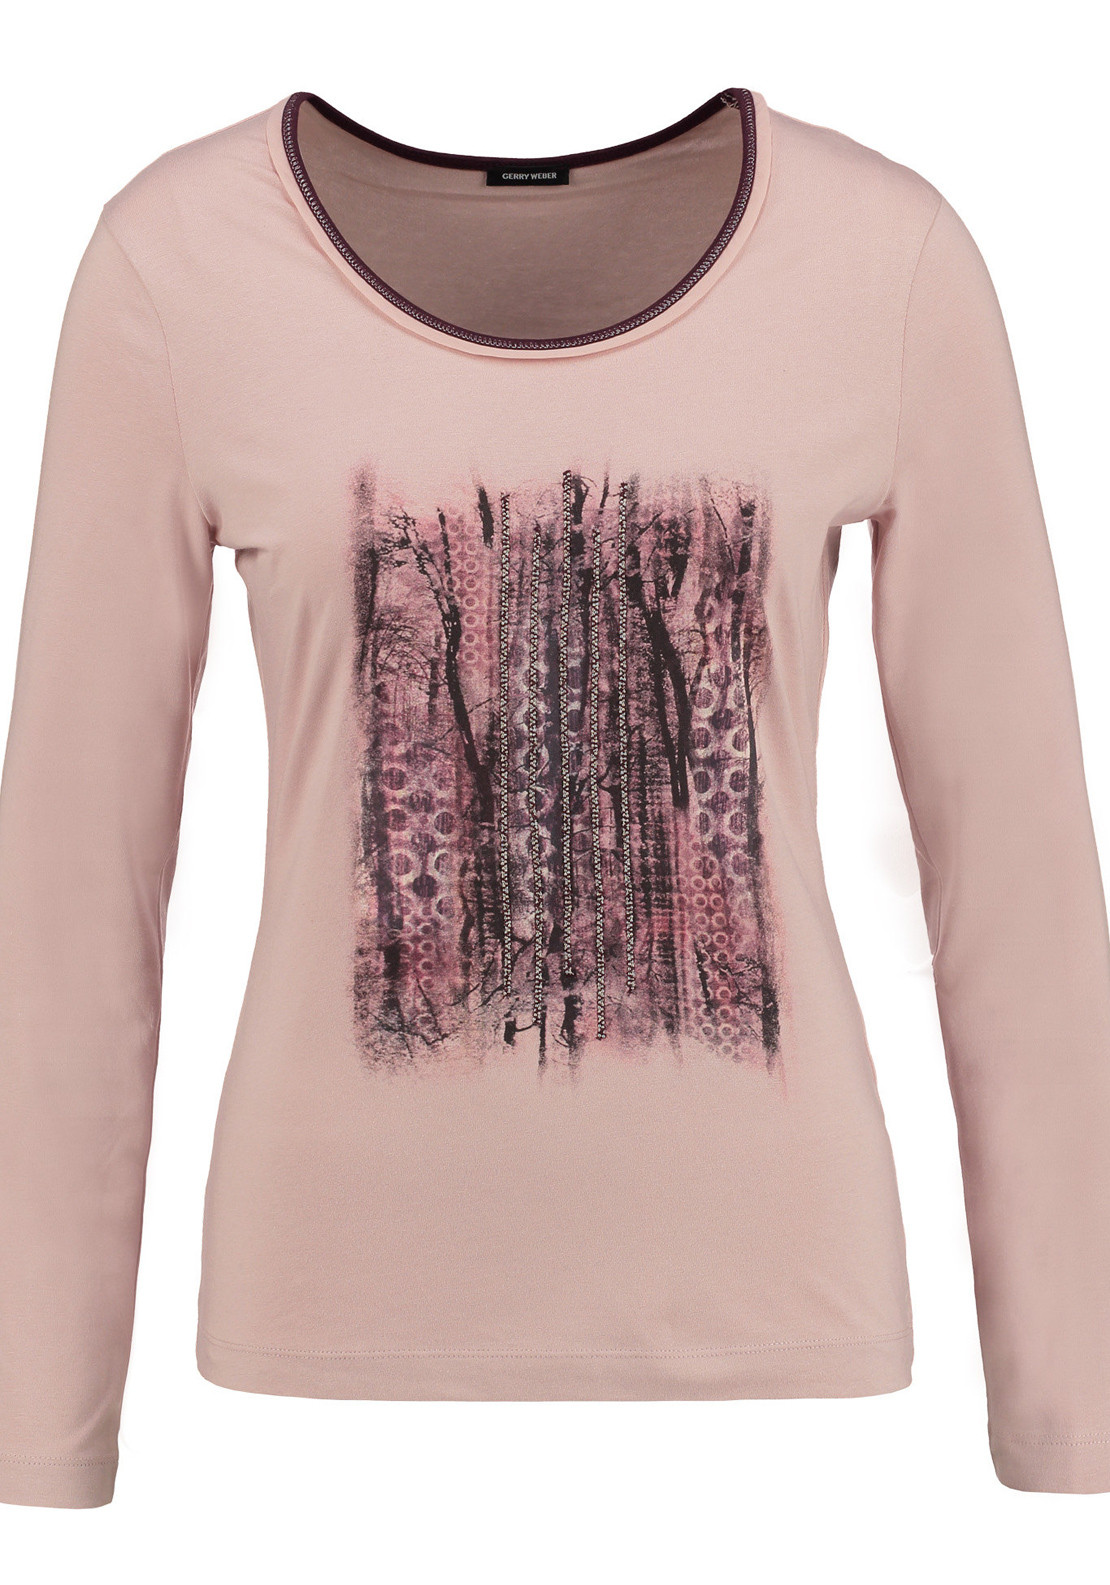 Gerry Weber Stud Embellished Printed Long Sleeve T-Shirt, Pink